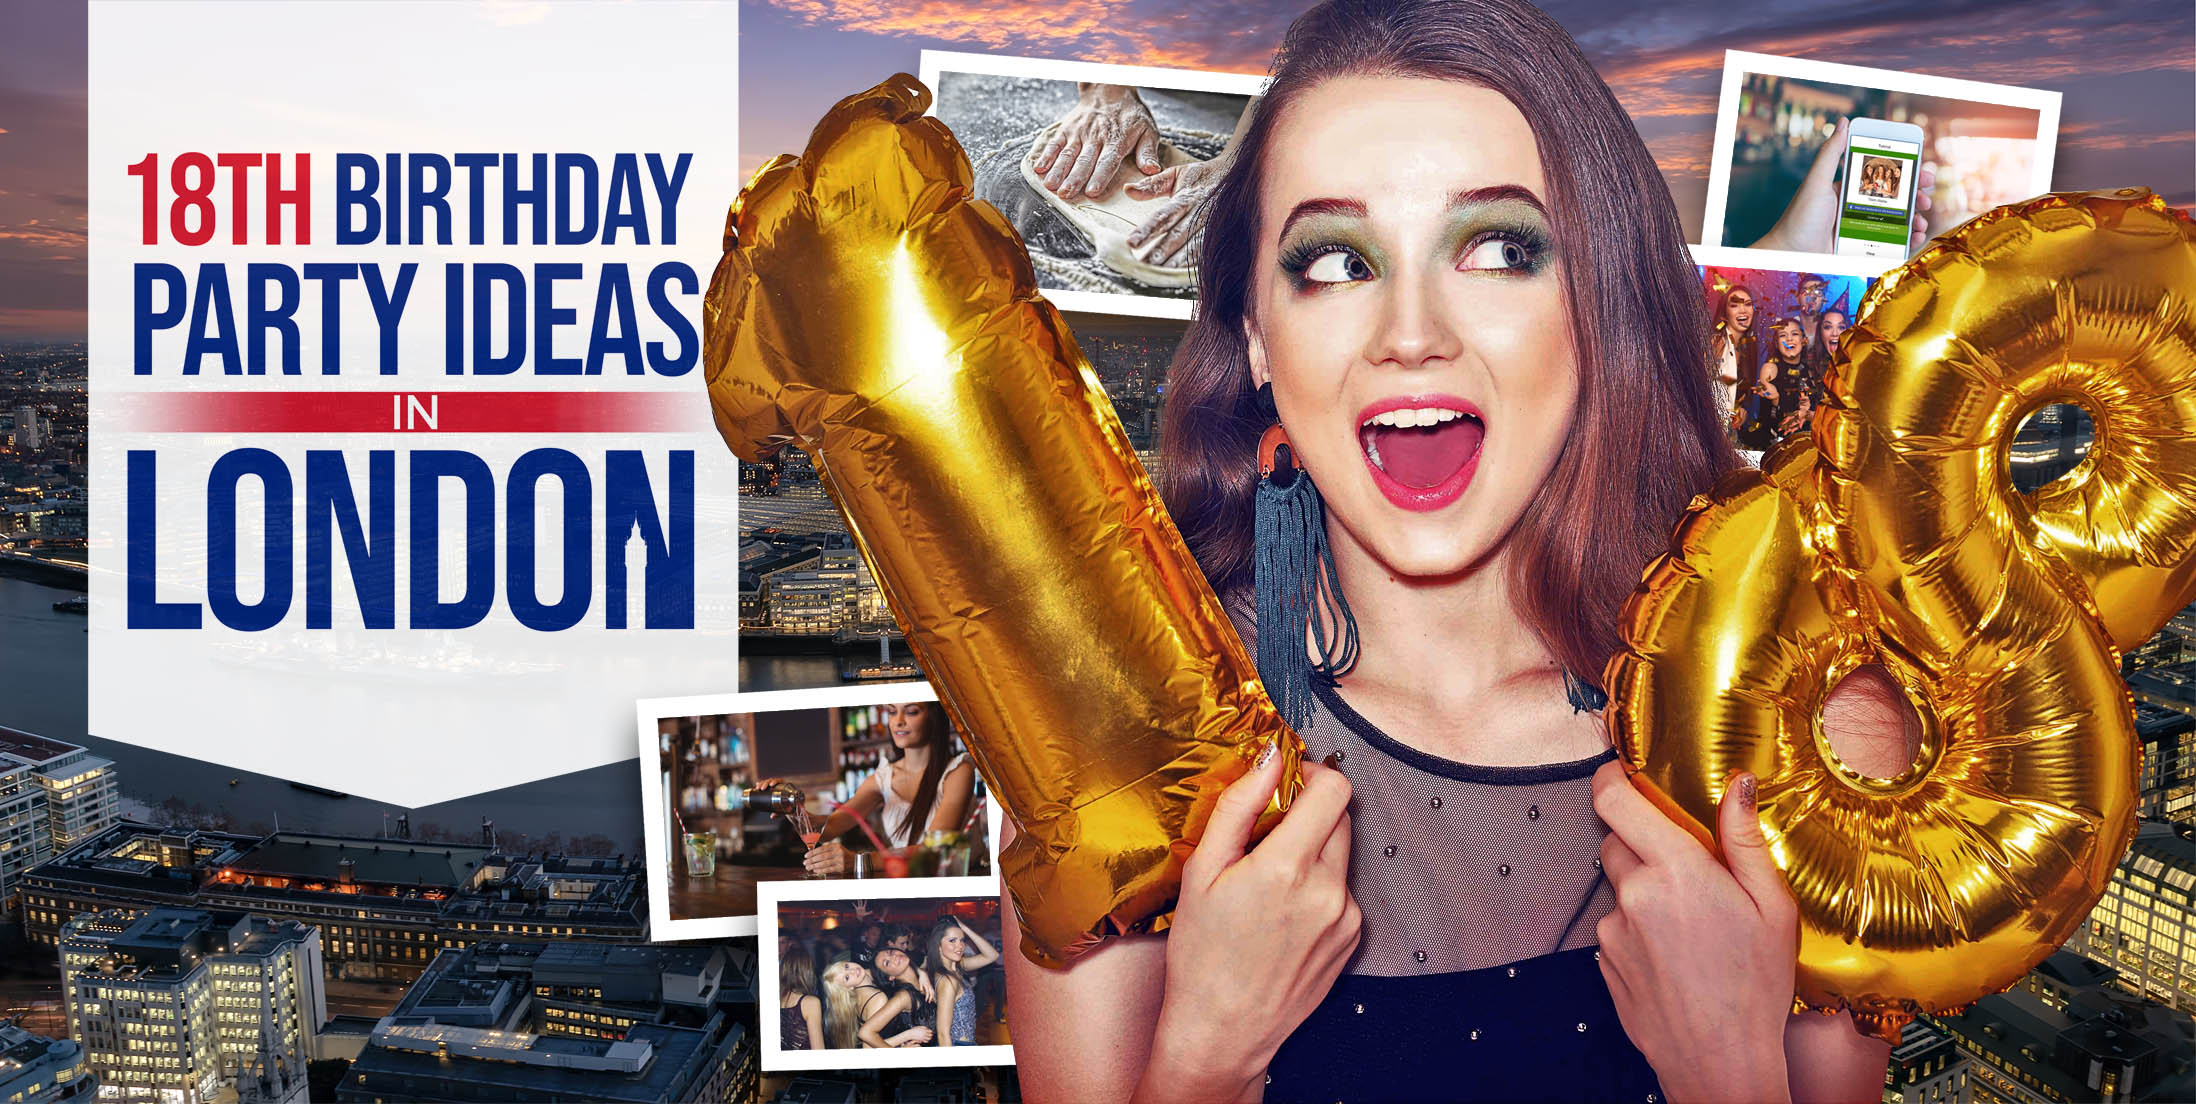 18th Birthday Party Ideas in London